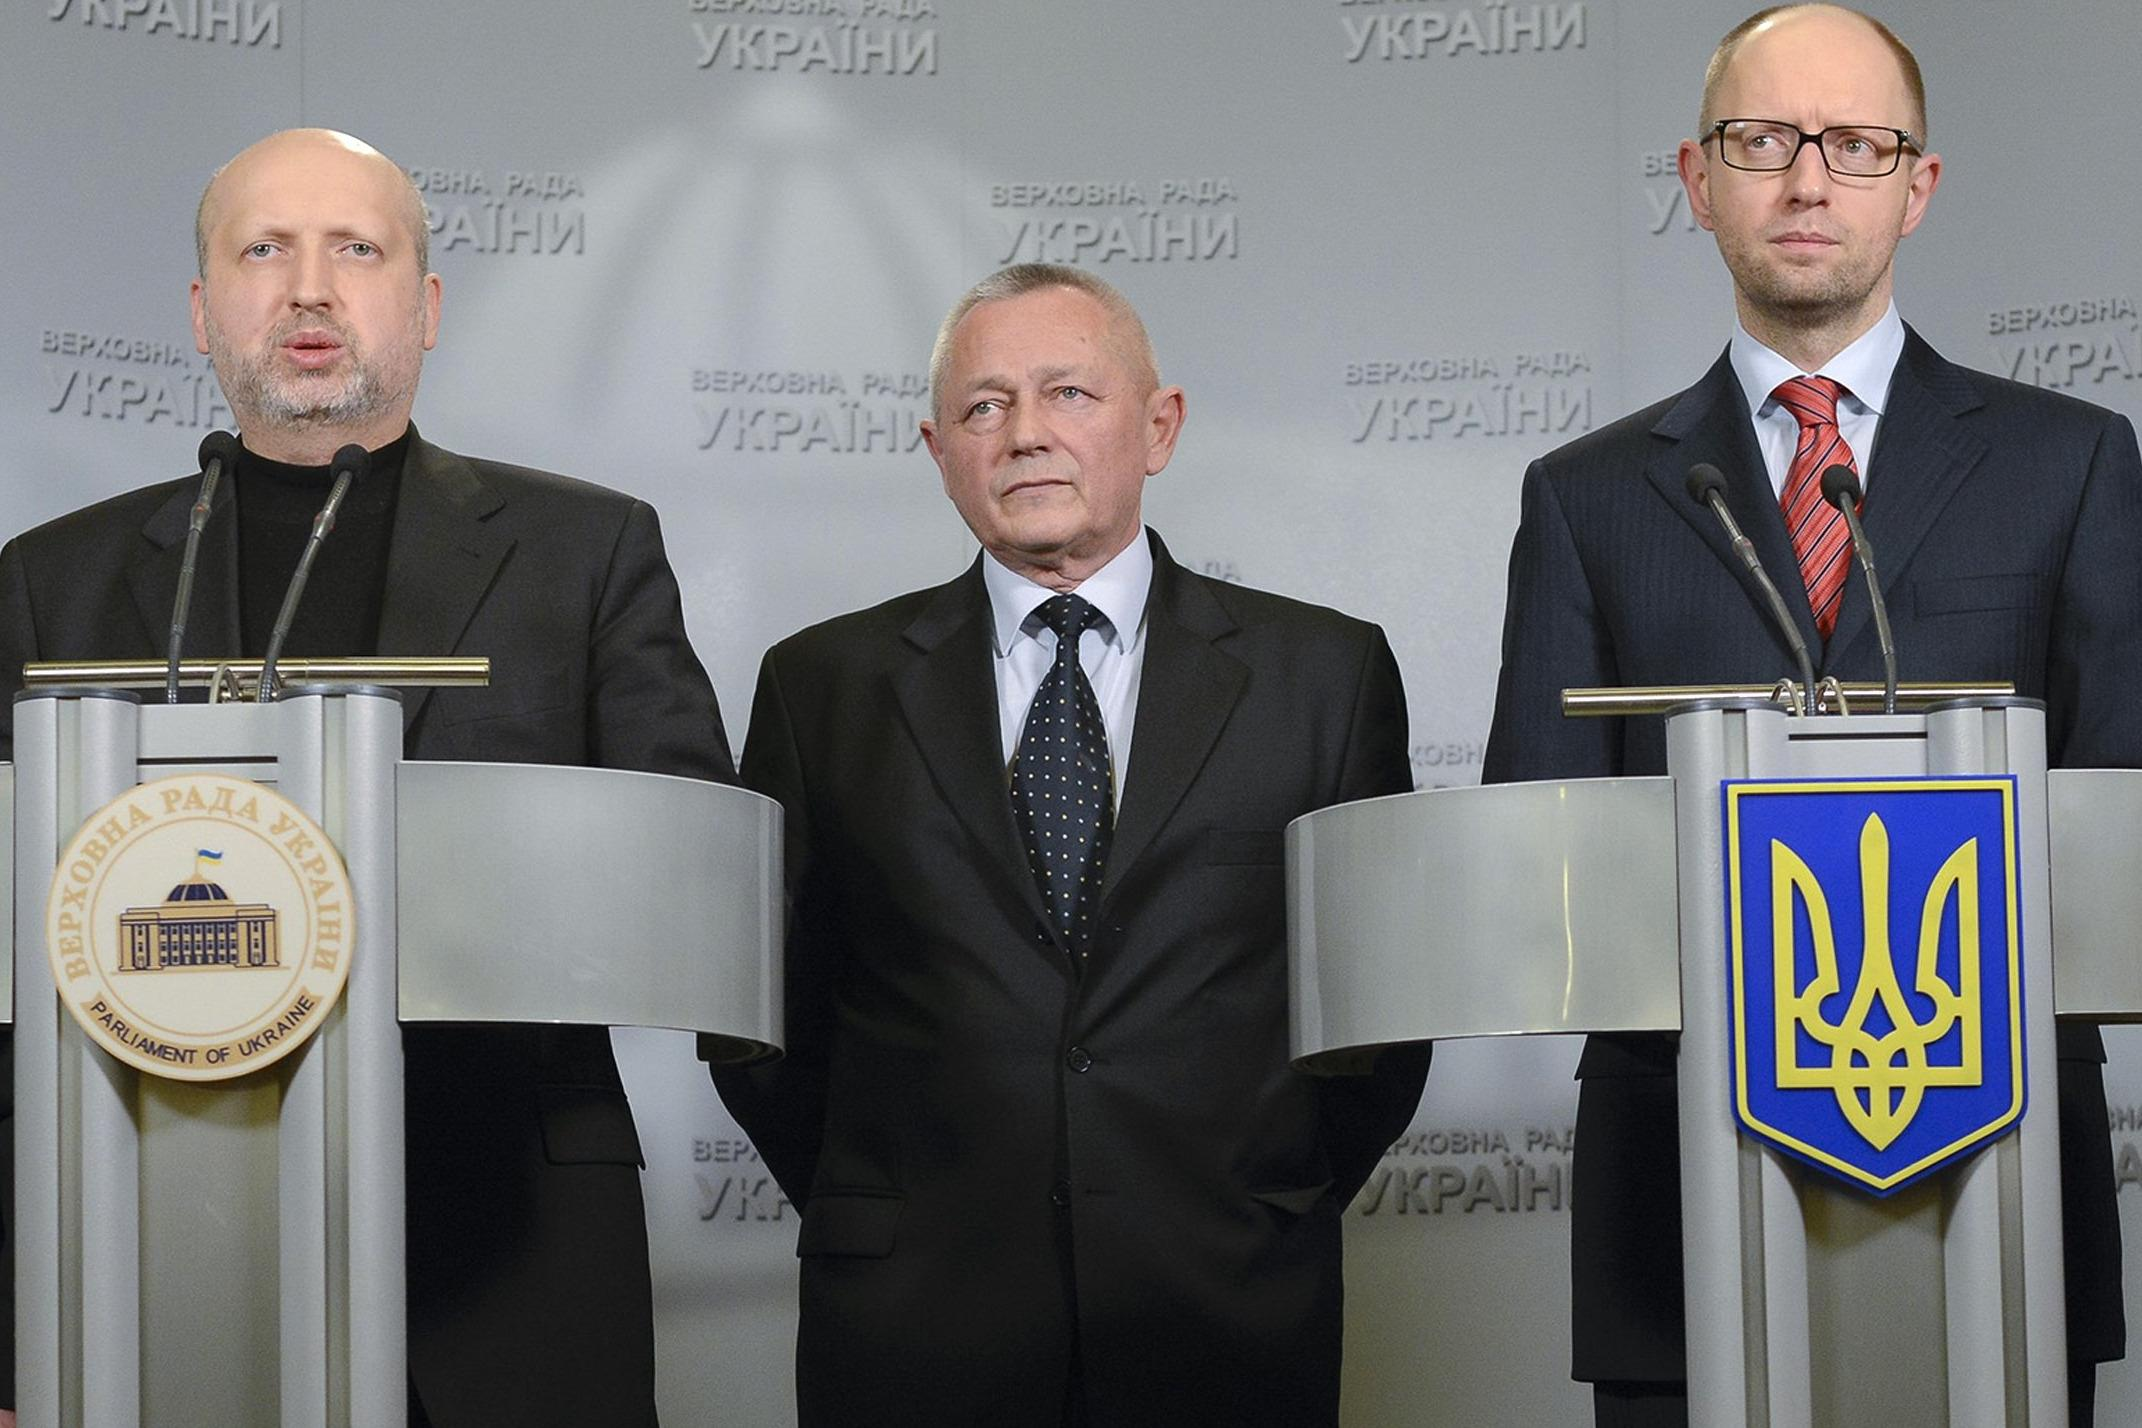 Image: Ukraine's Acting President Oleksander Turchinov, Prime Minister Arseny Yatseniuk and Defense Minister Ihor Tenyukh address journalists in Kiev